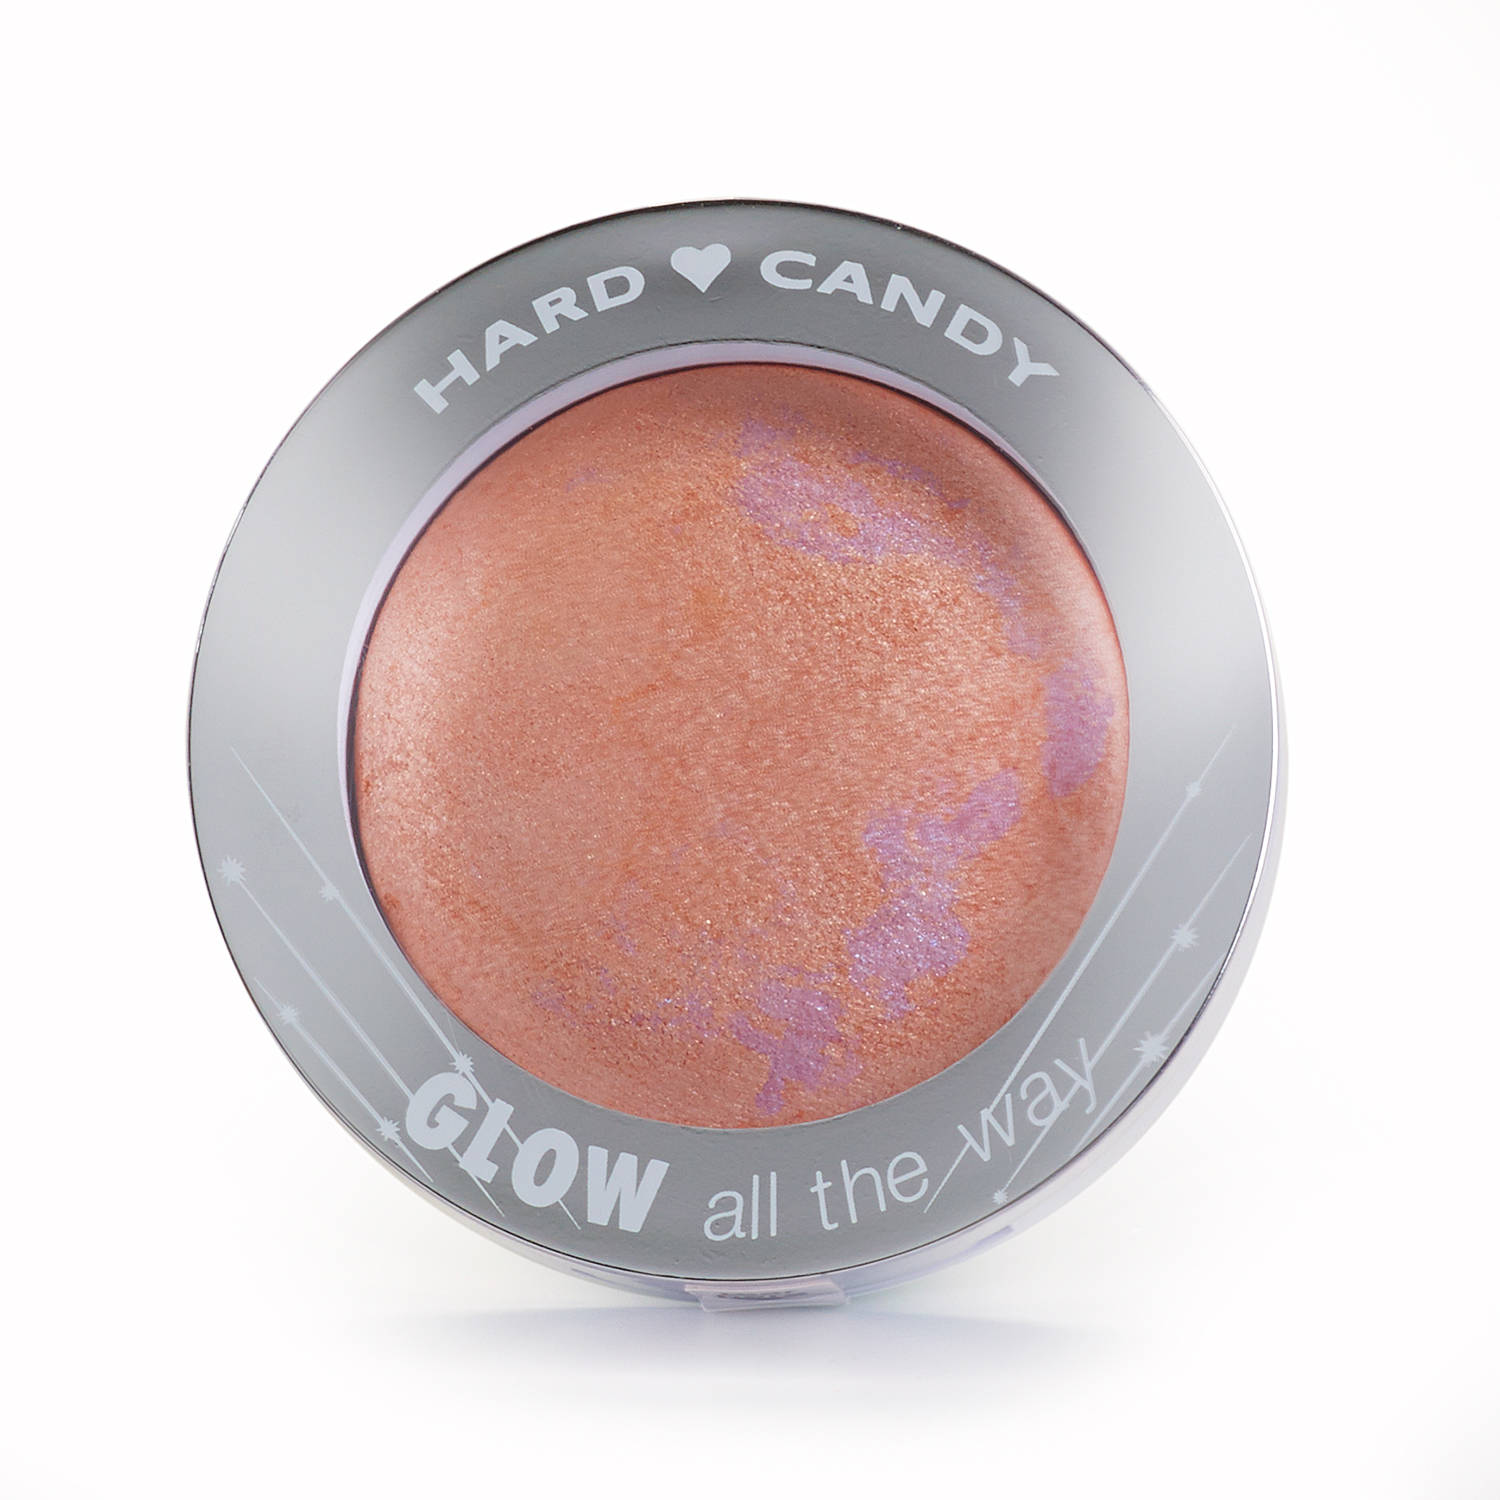 Hard Candy Blush Crush Baked Blush, 0127 Honeymoon Peach, .09 oz